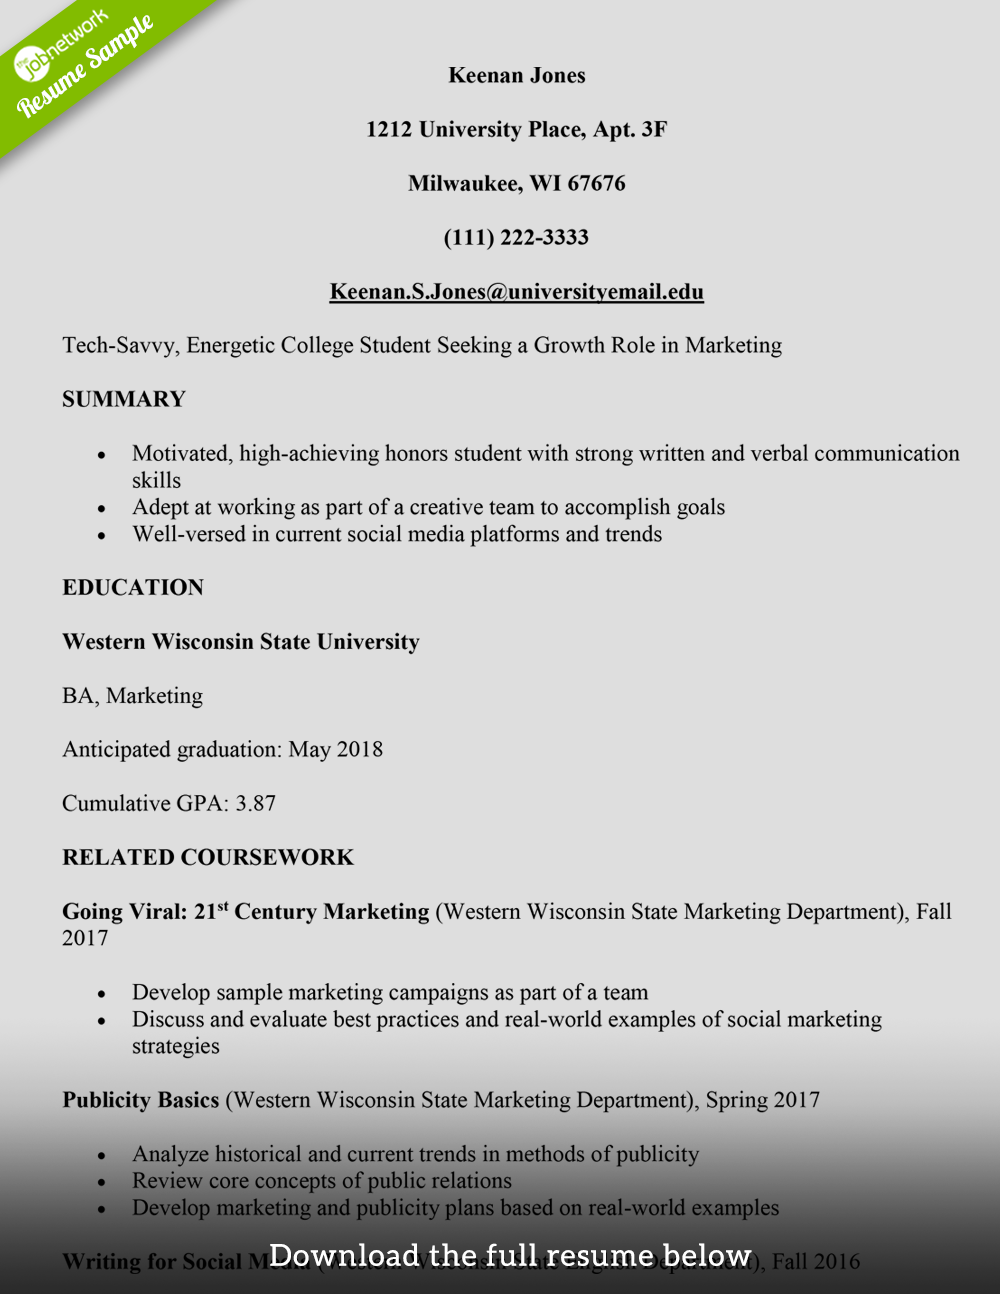 Resume Samples For College Student.How To Write A College Student Resume With Examples